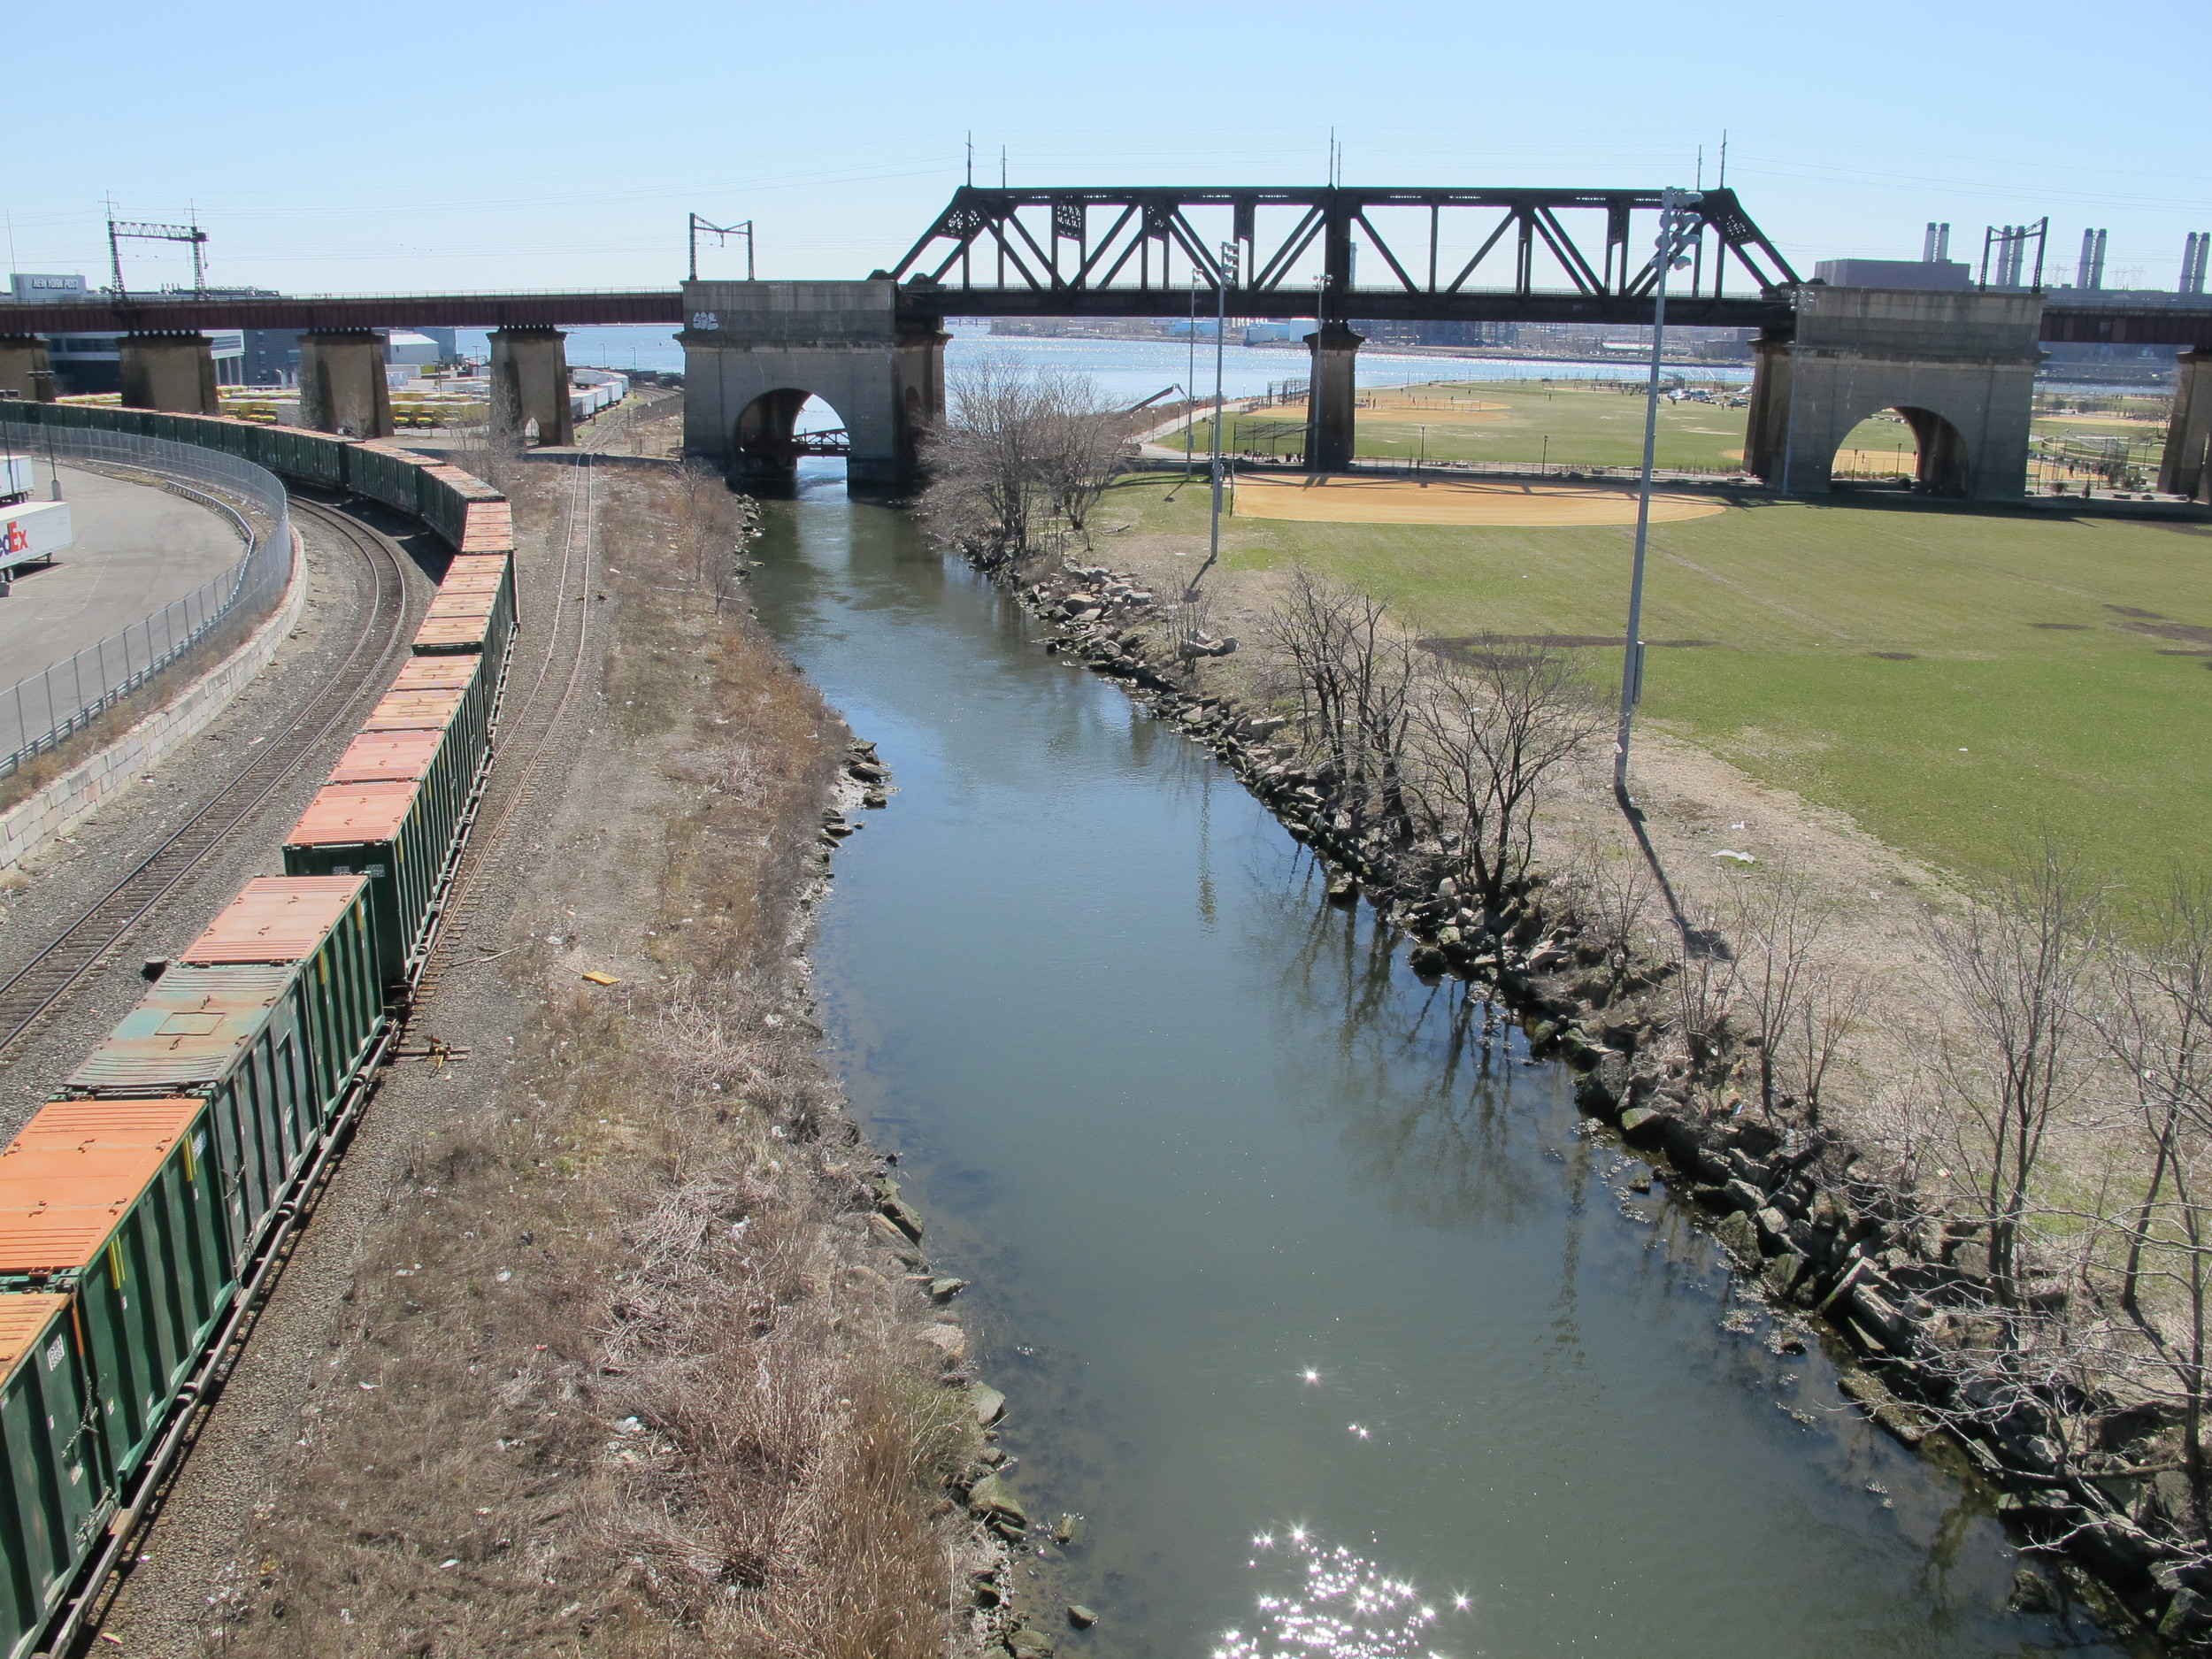 bridge and train cars.JPG